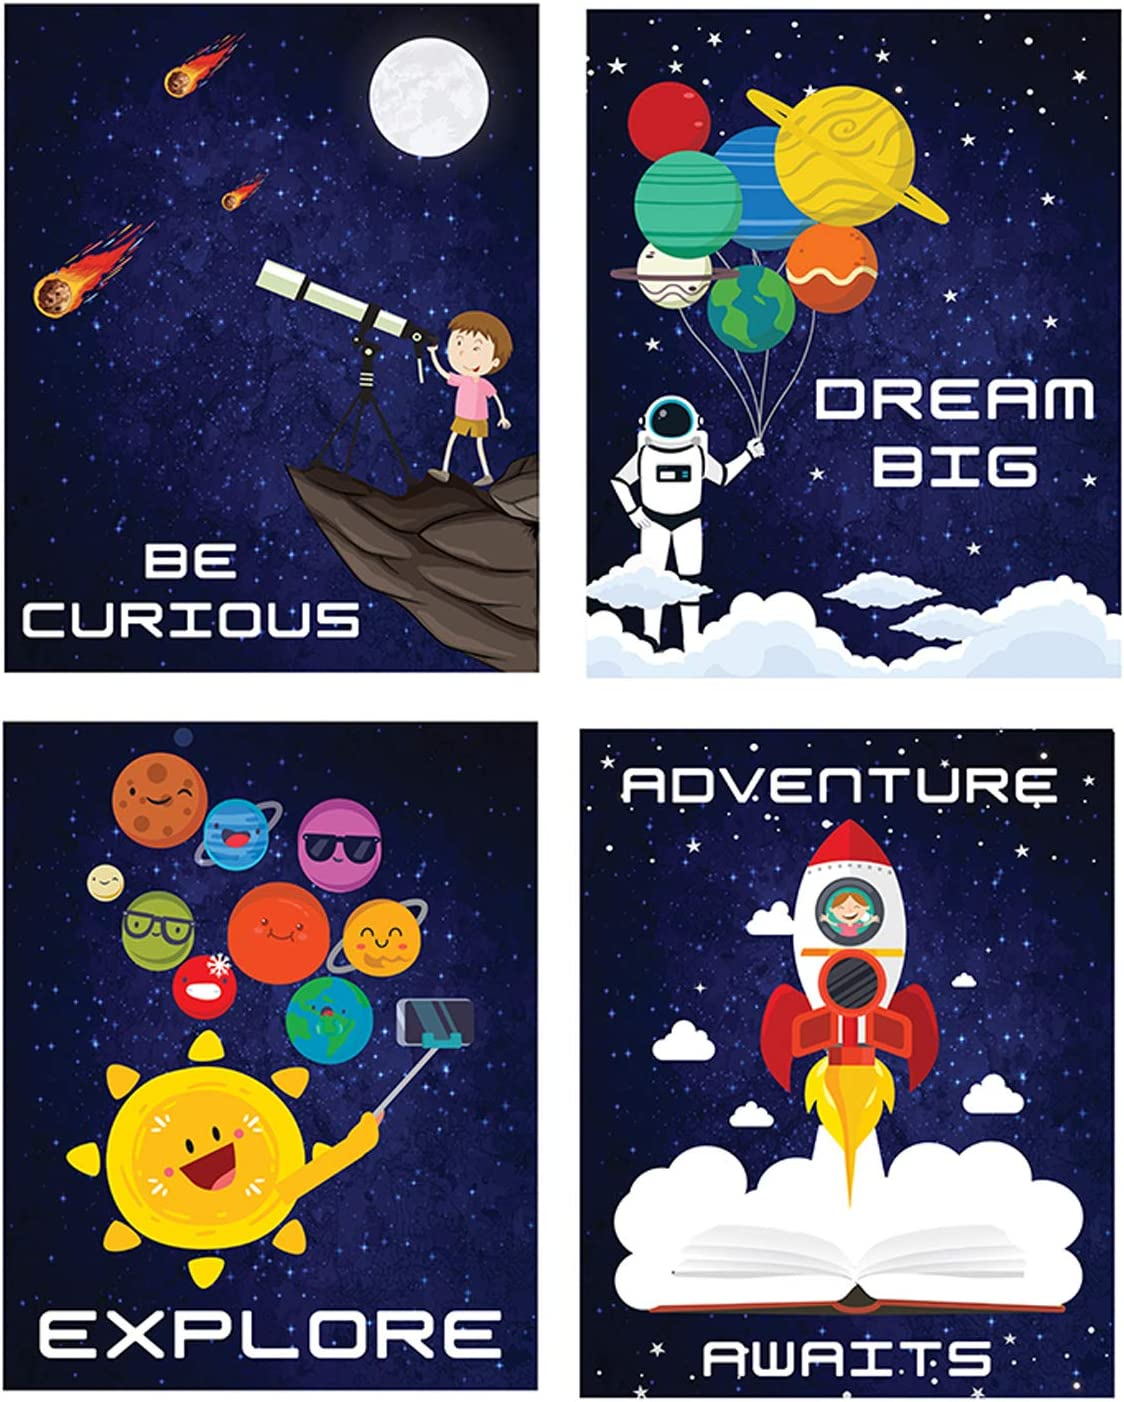 Outer Space Room Decor Wall Posters I Kids Space Tapestry Solar System Decoration I Pack of 4 - 8''X10'' Boys Bedroom Poster I Galaxy Space Themed Science Classroom Art Astronaut Inspirational Astronomy Decorating Stickers